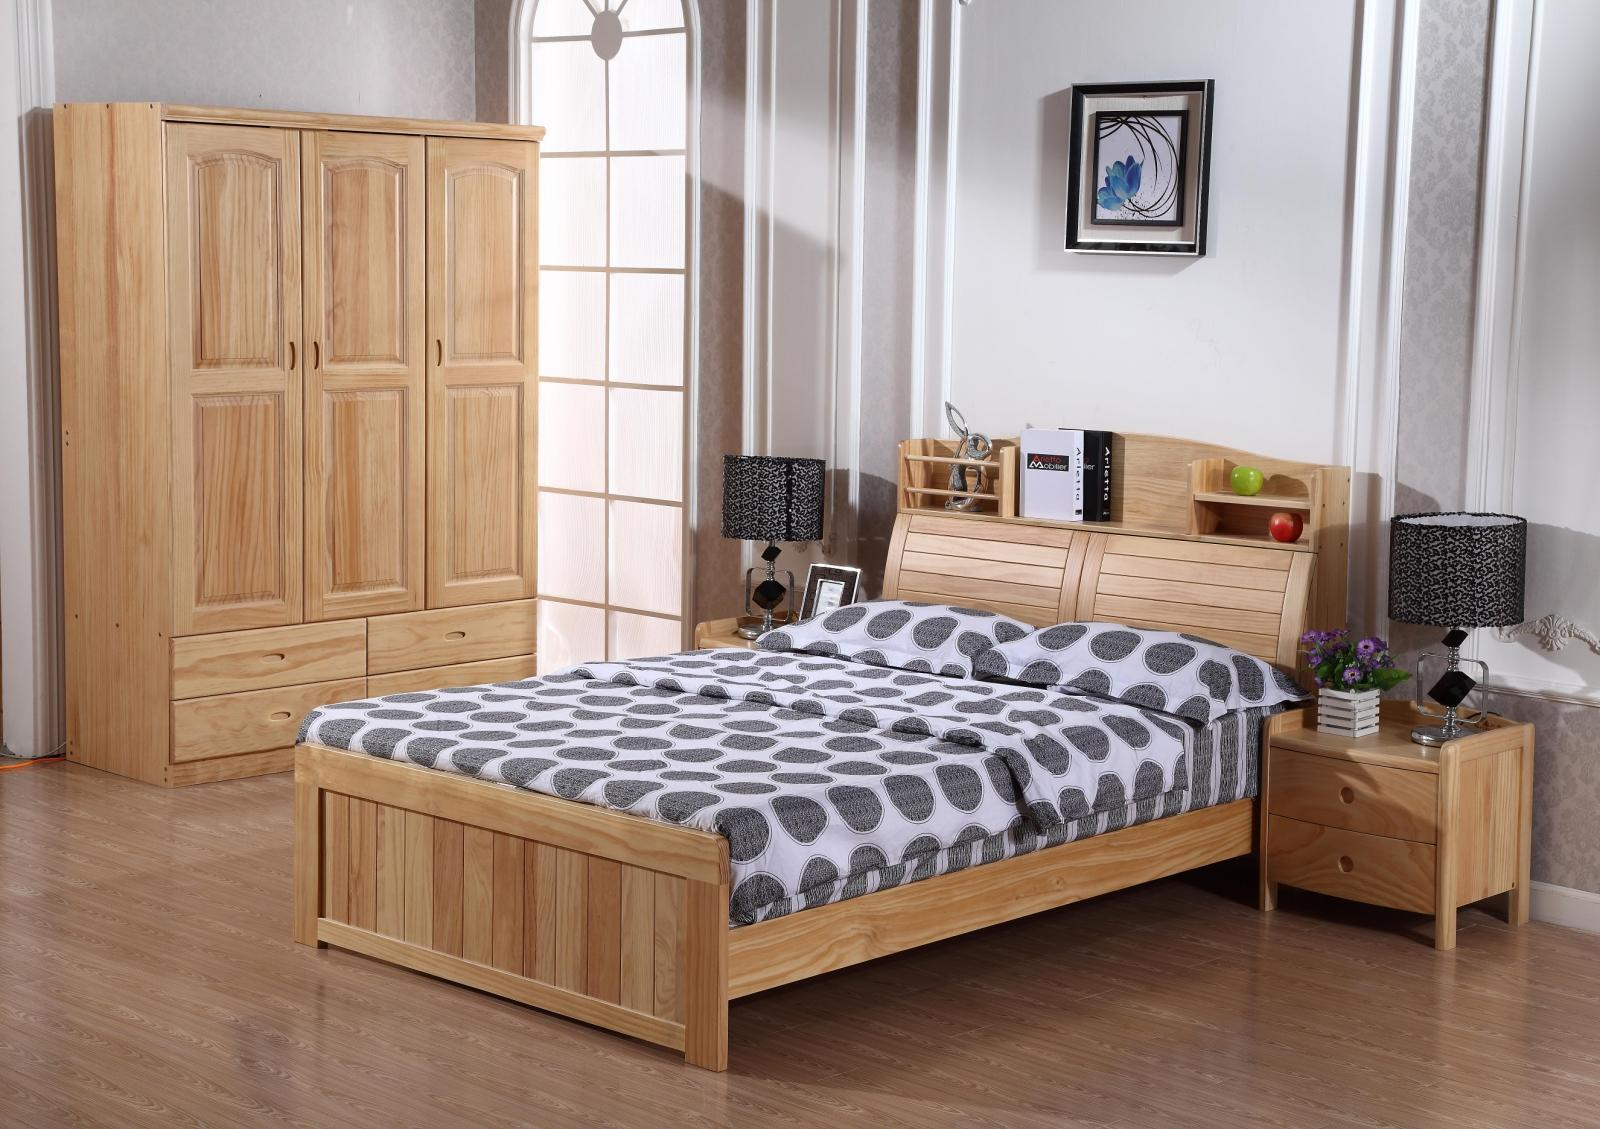 Marvellous Pressure Children Furniture Sets Fromfurniture On Counter New Zealand Pine Bookcase Solid Wood Bedroom Furniture Child Counter New Zealand Pine Bookcase Solid Wood Bedroom Furniture Child B baby Solid Wood Bedroom Furniture